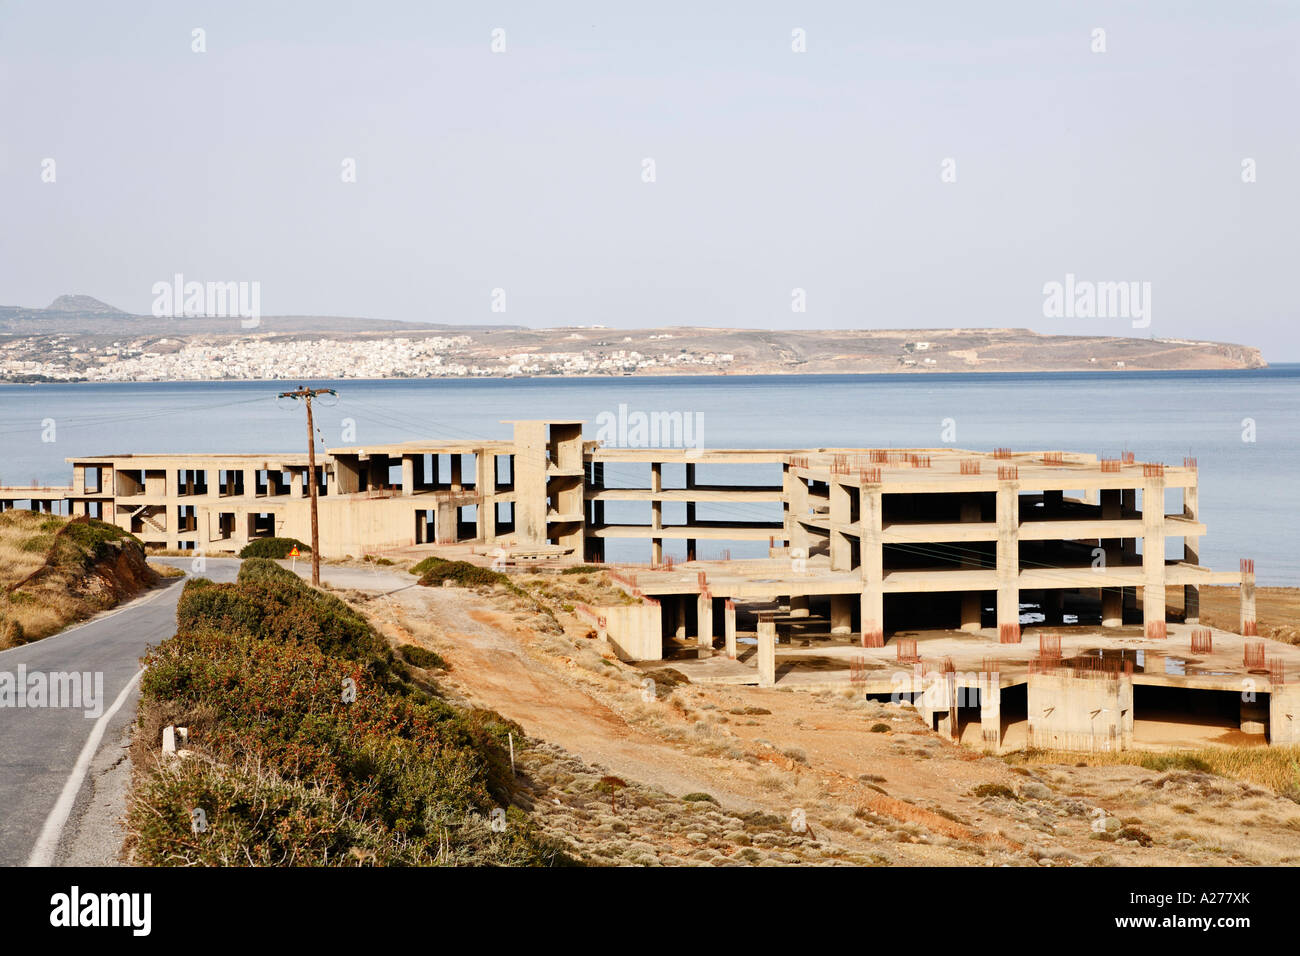 Construction ruin (reinforced concrete) of Hotel near Sitia, eastern Crete, Greece - Stock Image